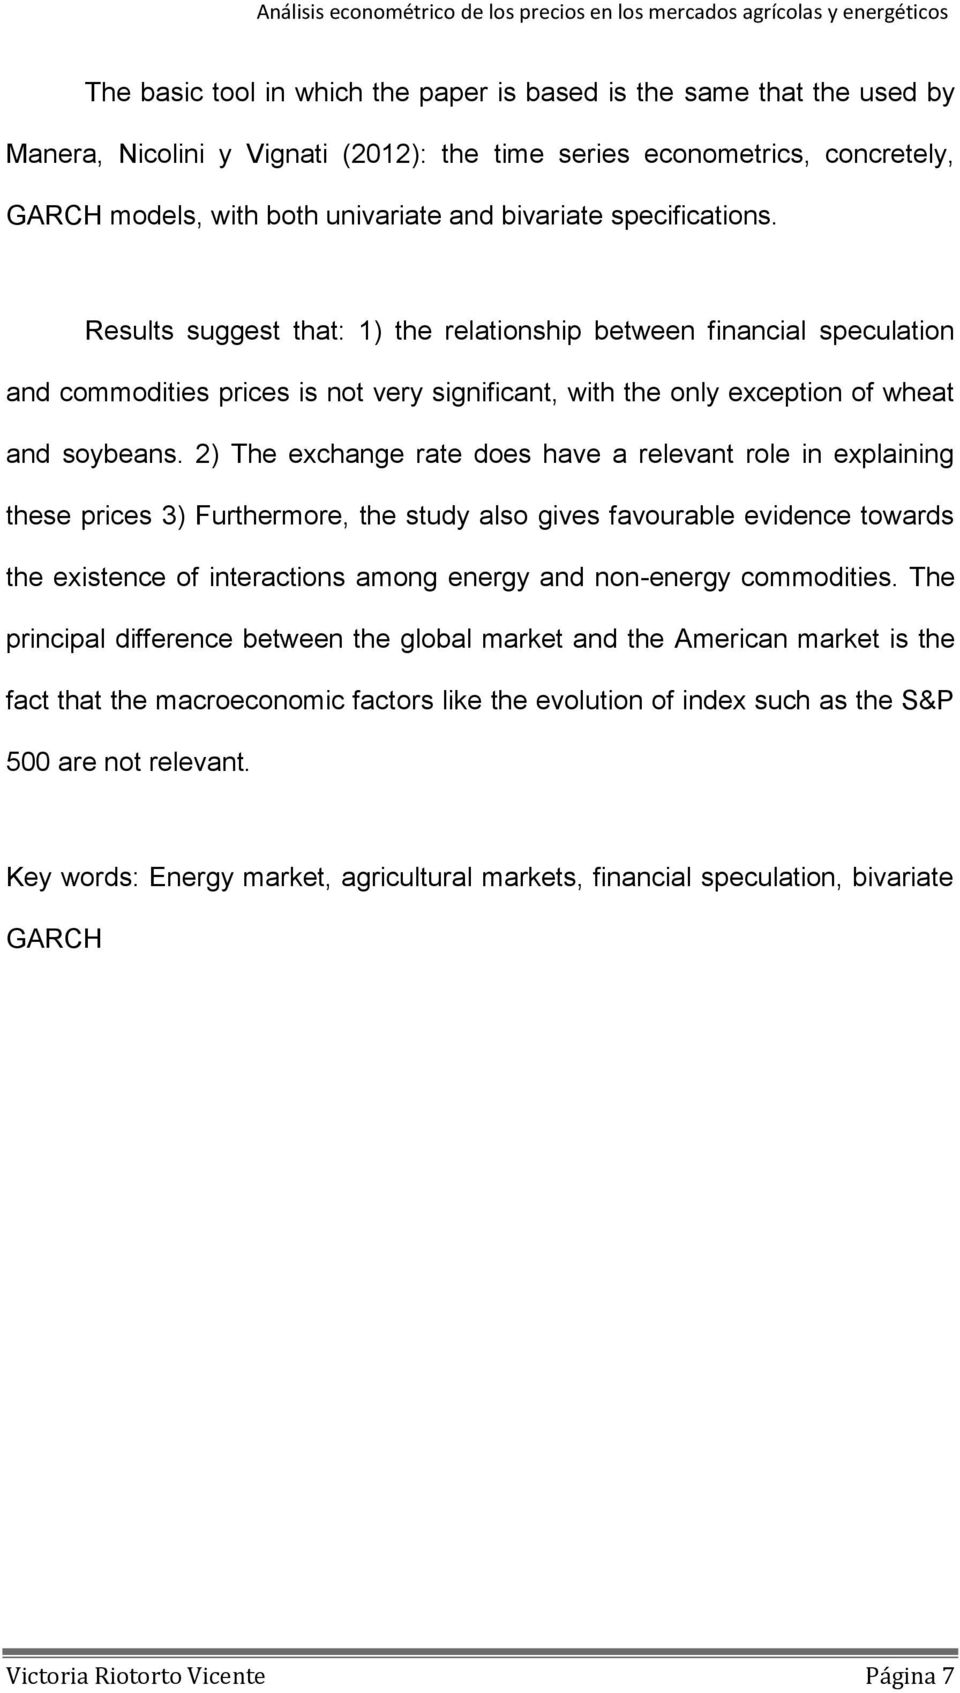 2) The exchange rate does have a relevant role in explaining these prices 3) Furthermore, the study also gives favourable evidence towards the existence of interactions among energy and non-energy